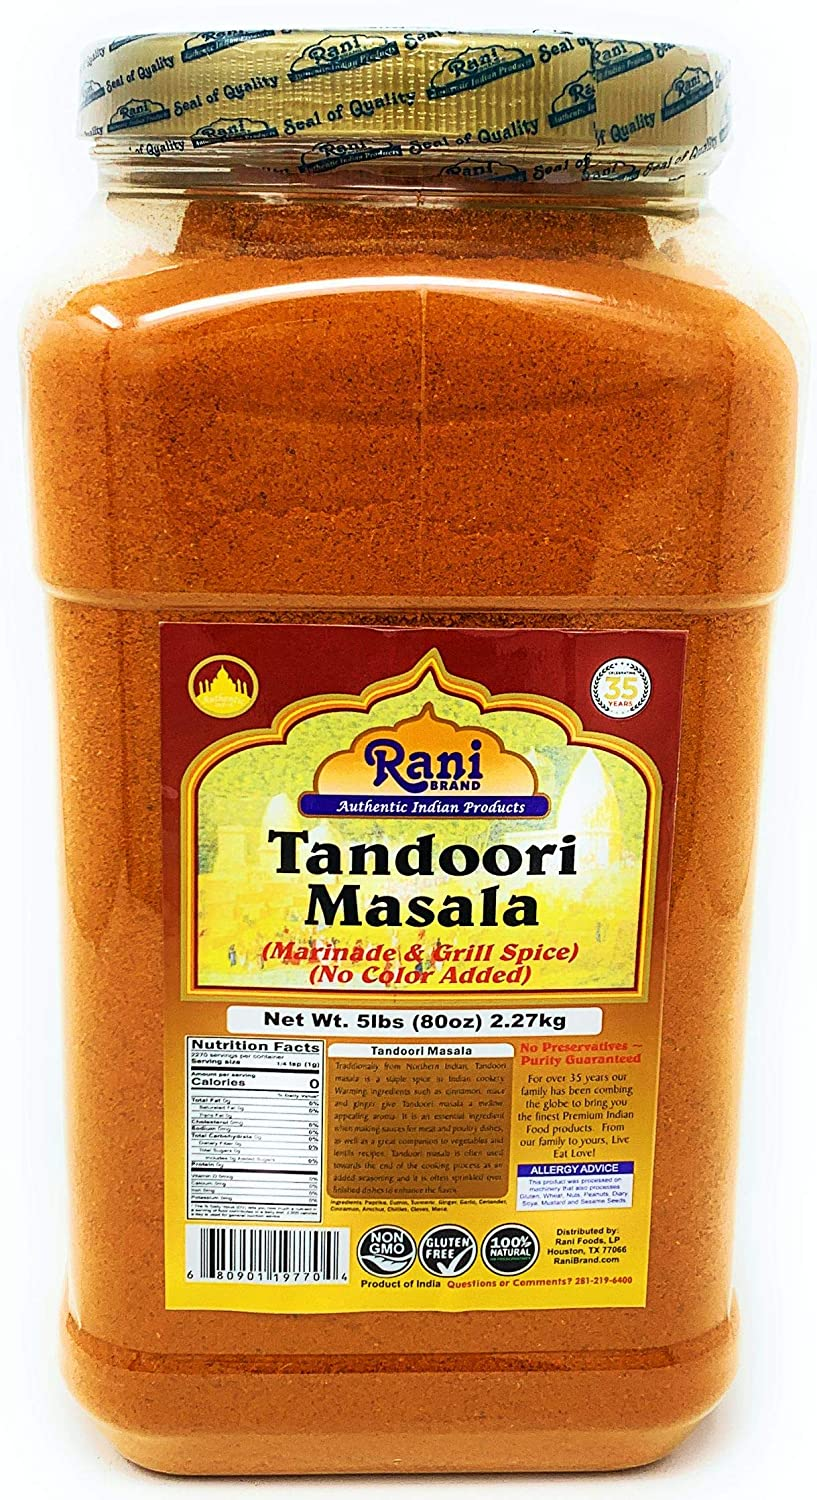 Rani Tandoori Masala (Natural, No Colors Added) Indian 11-Spice Blend 5lbs (80oz) ~ Salt Free | Vegan | Gluten Free Ingredients | NON-GMO